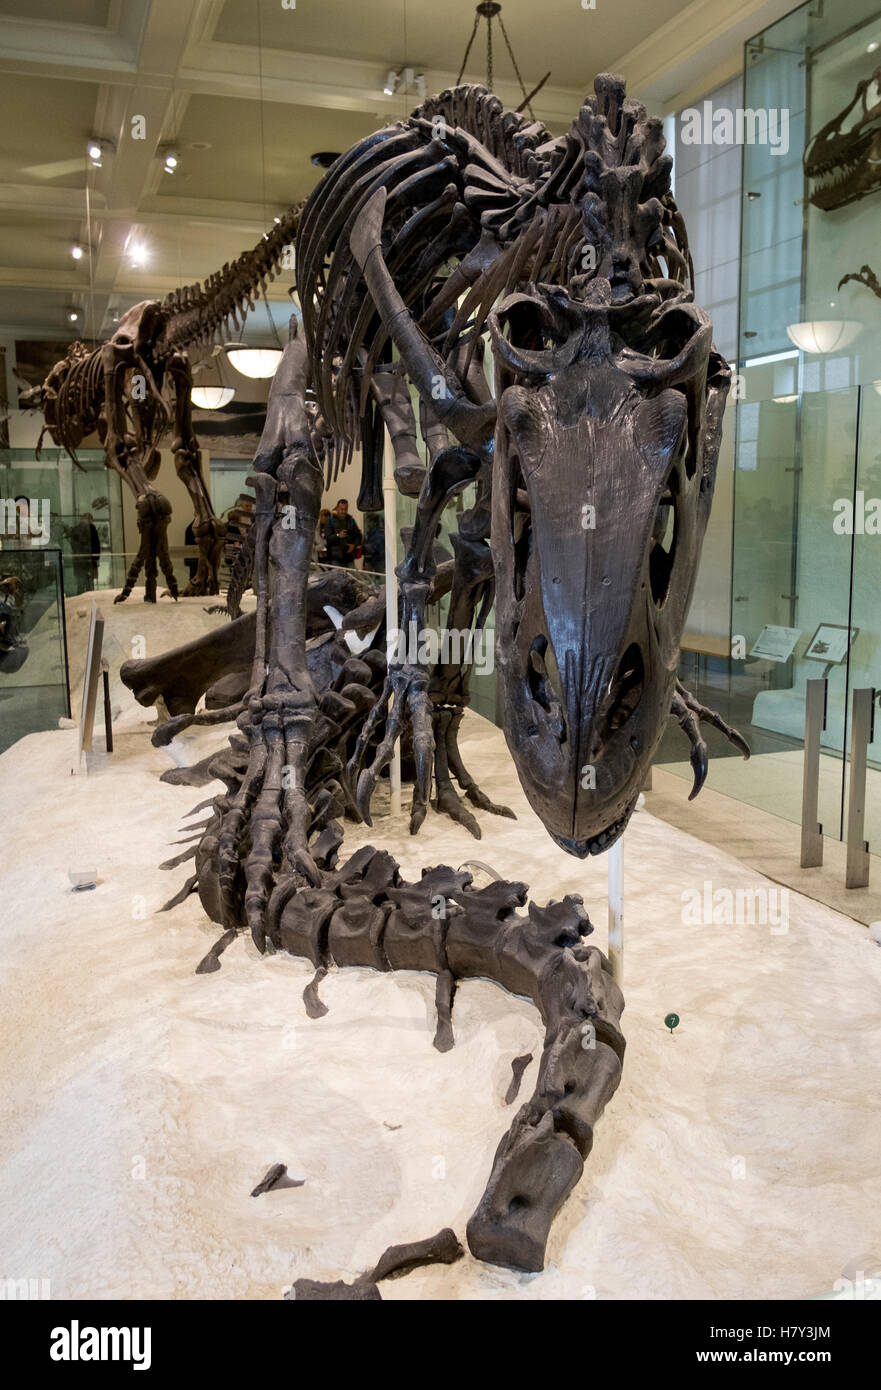 Allosaurus dinosaur skeleton in the New York Museum of Natural History - Stock Image